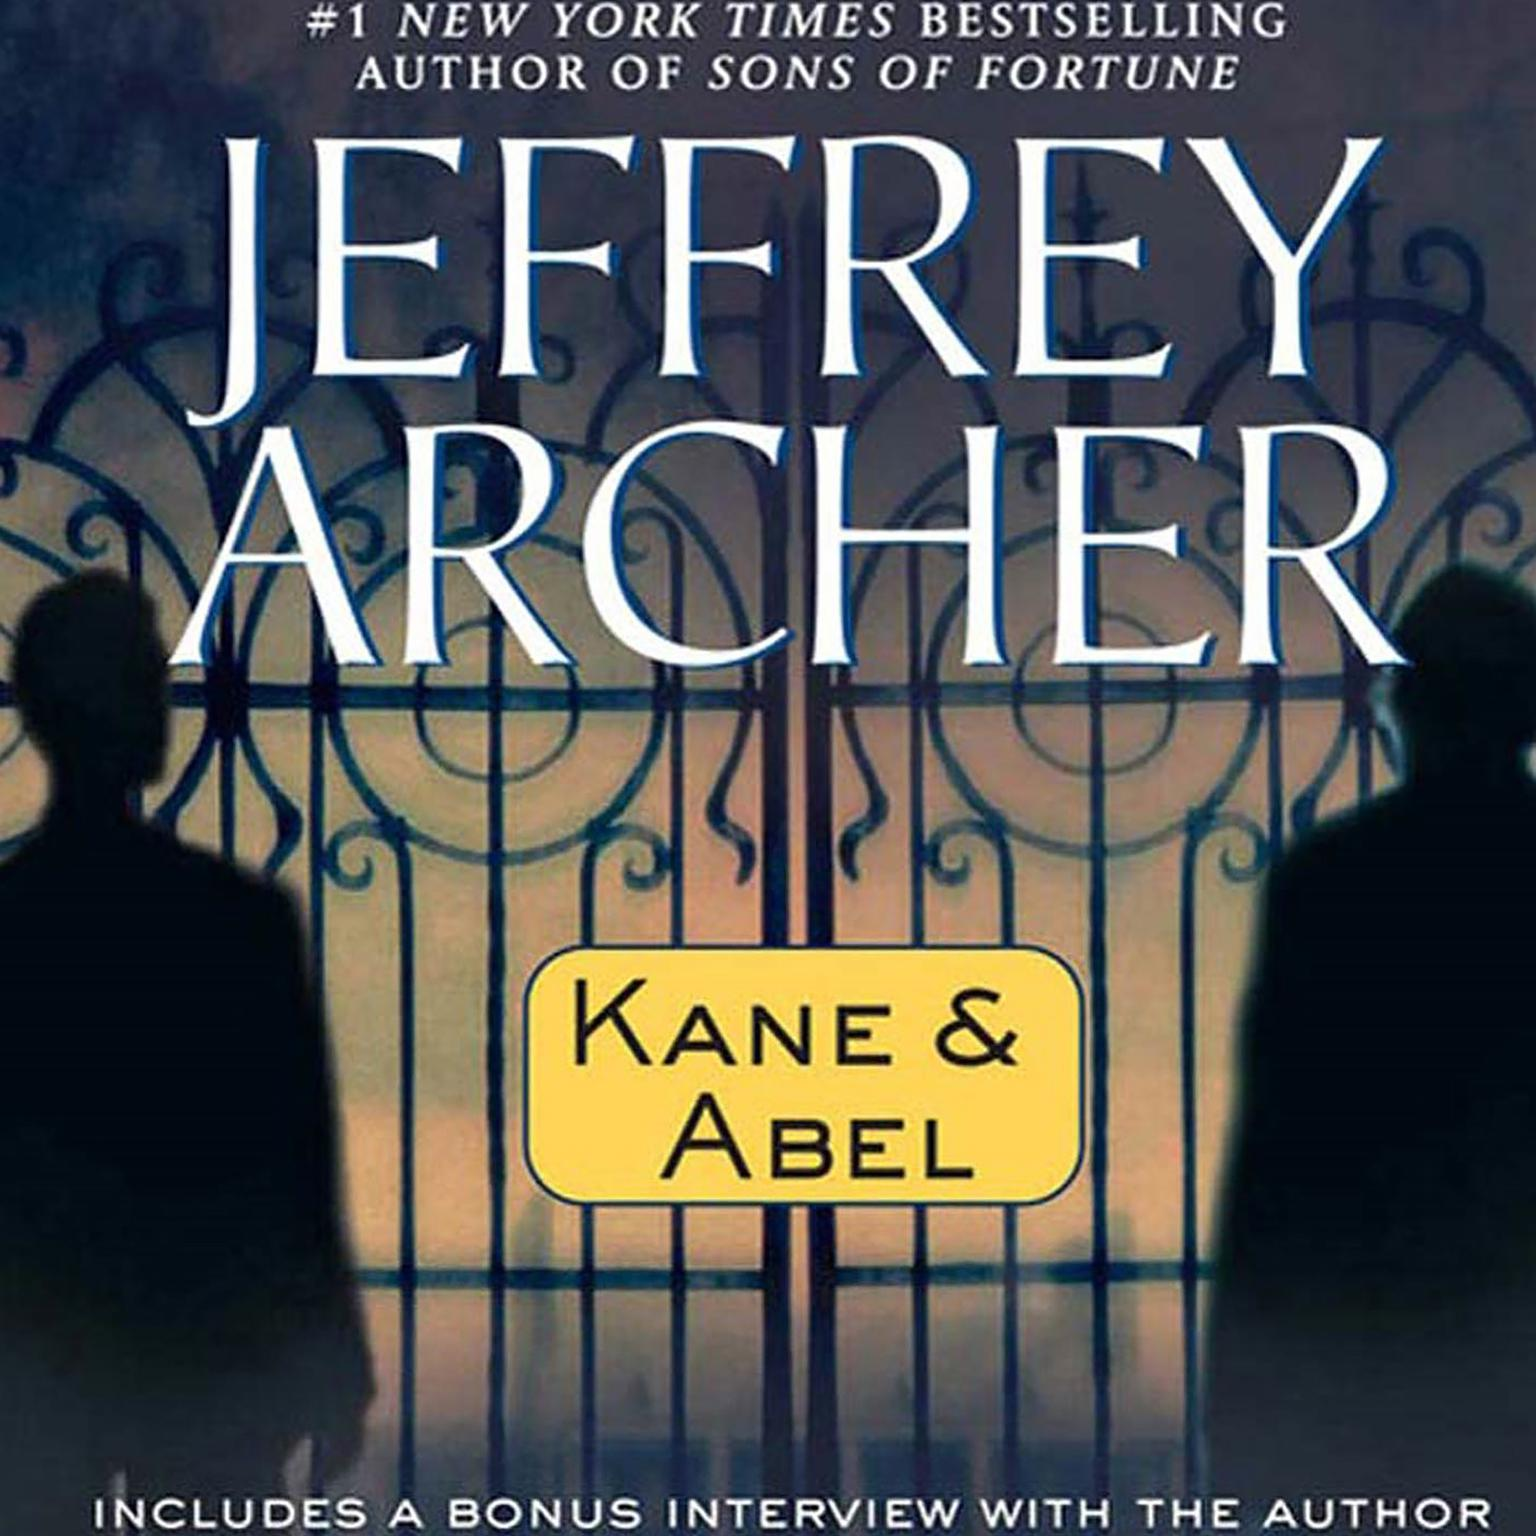 Printable Kane and Abel Audiobook Cover Art